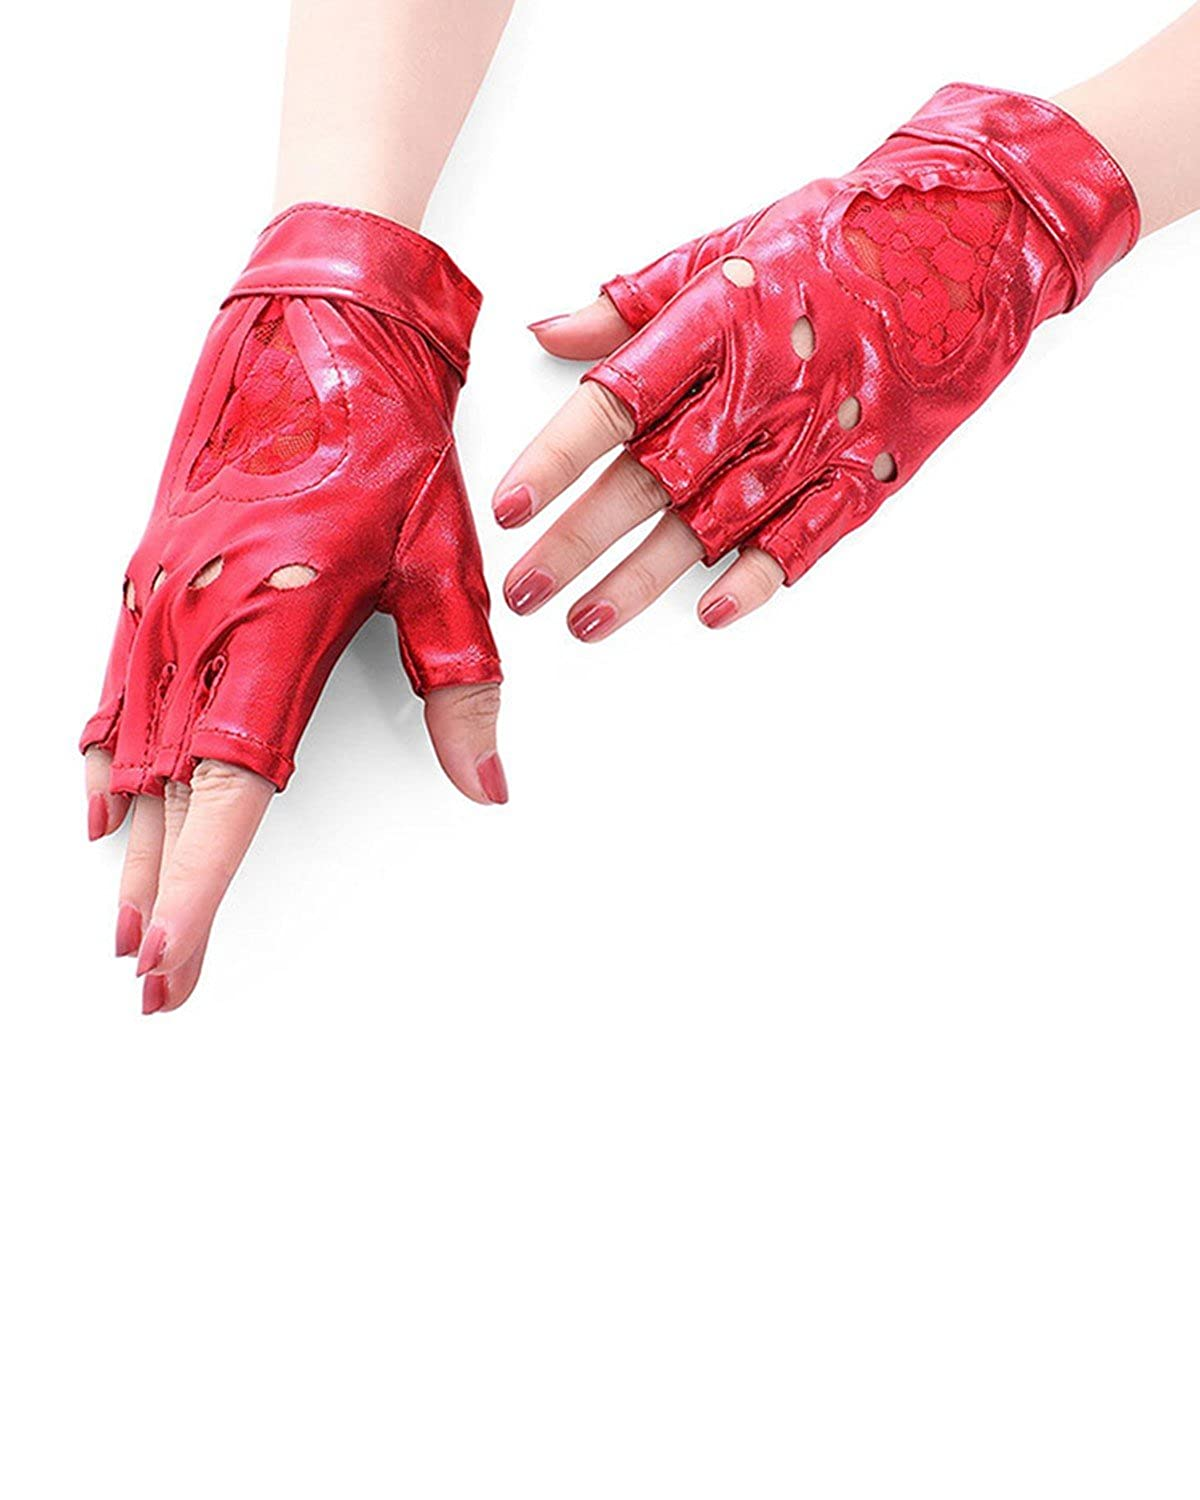 IXIMO Fingerless Mitten Hollow Out Punk Leather Glove For Performance Stage Show